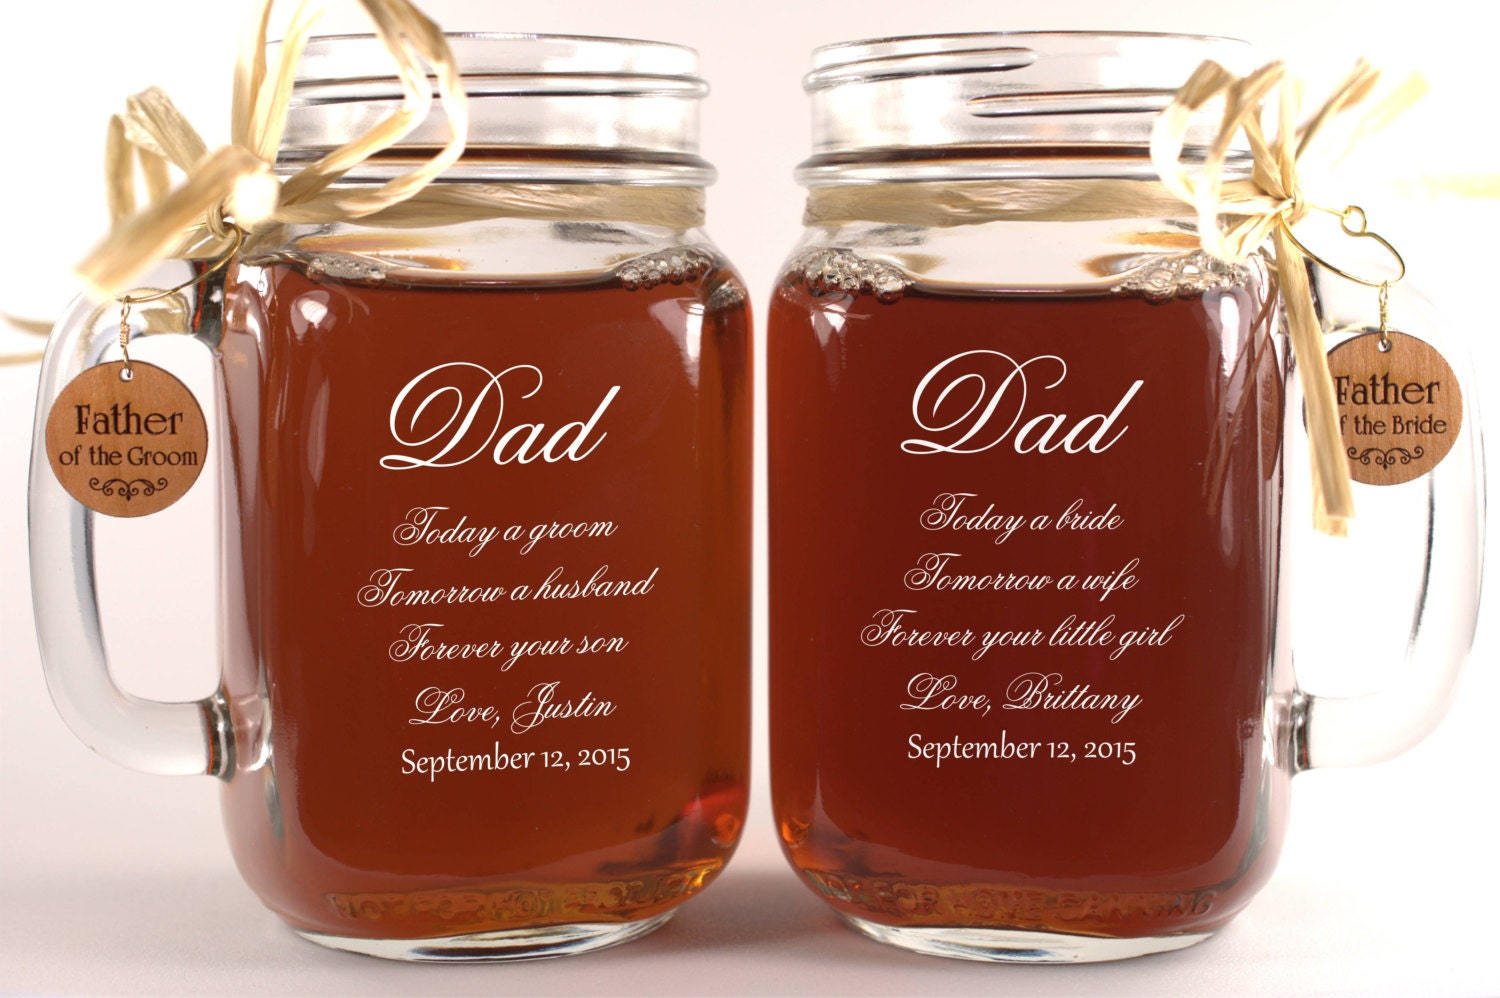 Engraved Wedding Gifts For Groom : Dad Wedding Gift Mason Jars Father of the Groom Gift Father